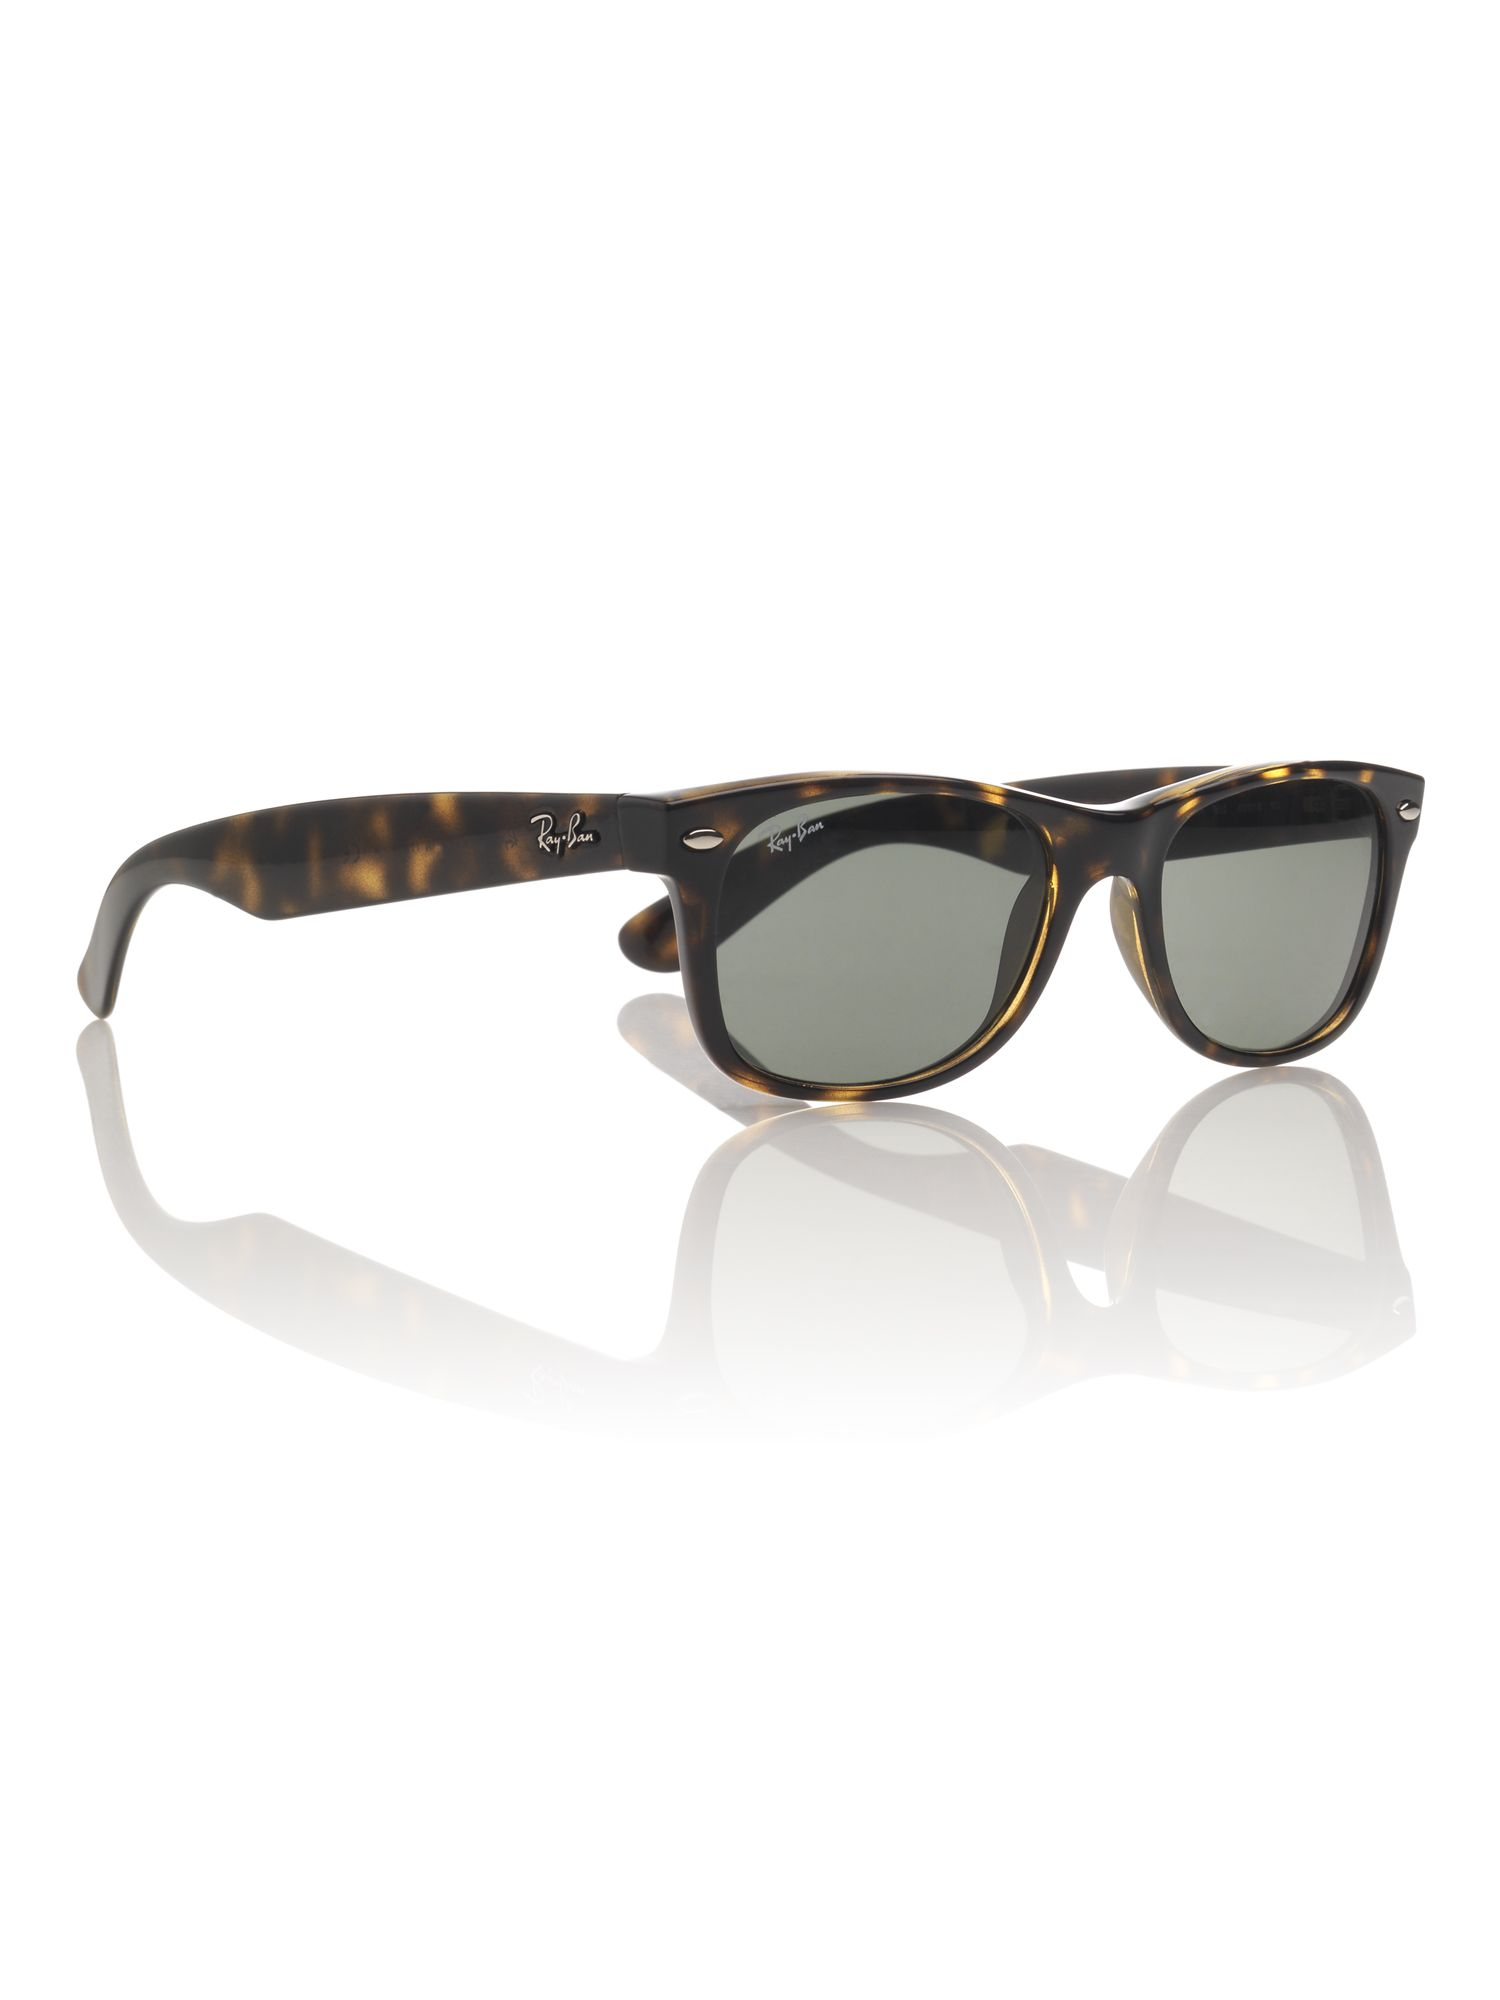 Unisex RB2132 New Wayfarer Tortoise Sunglasses